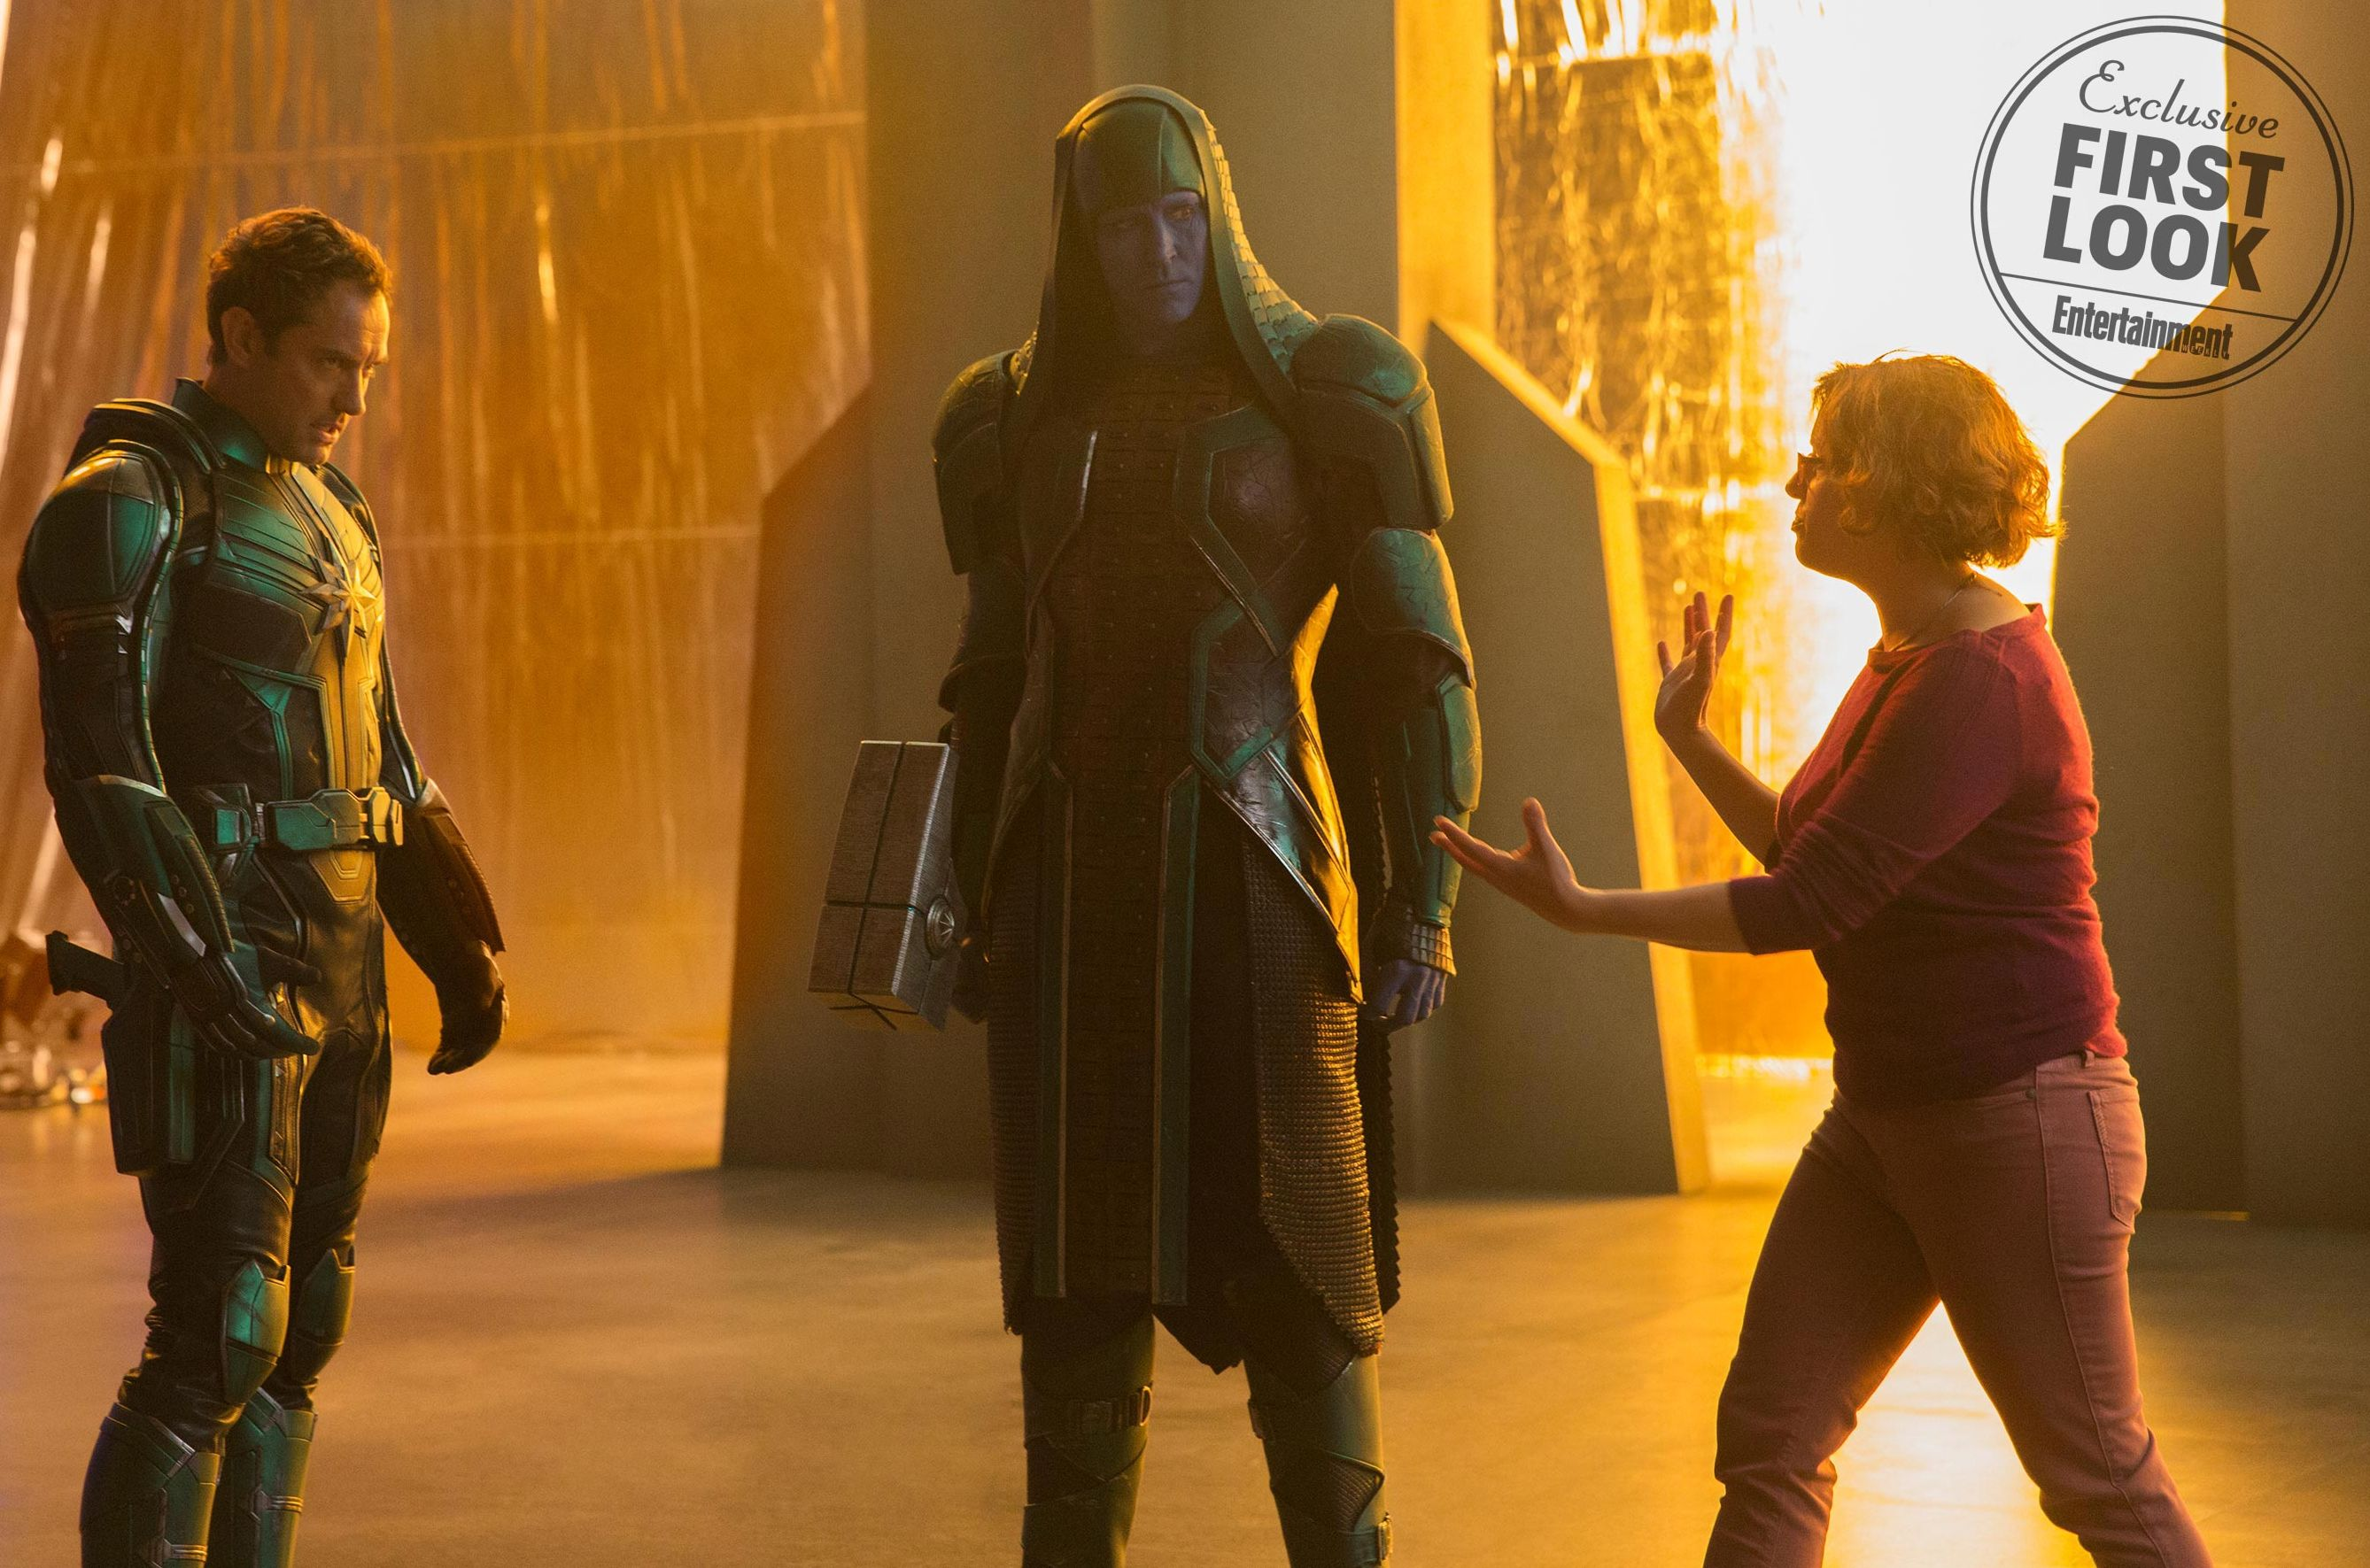 MCU fans have met the Kree race before in Guardians of the G